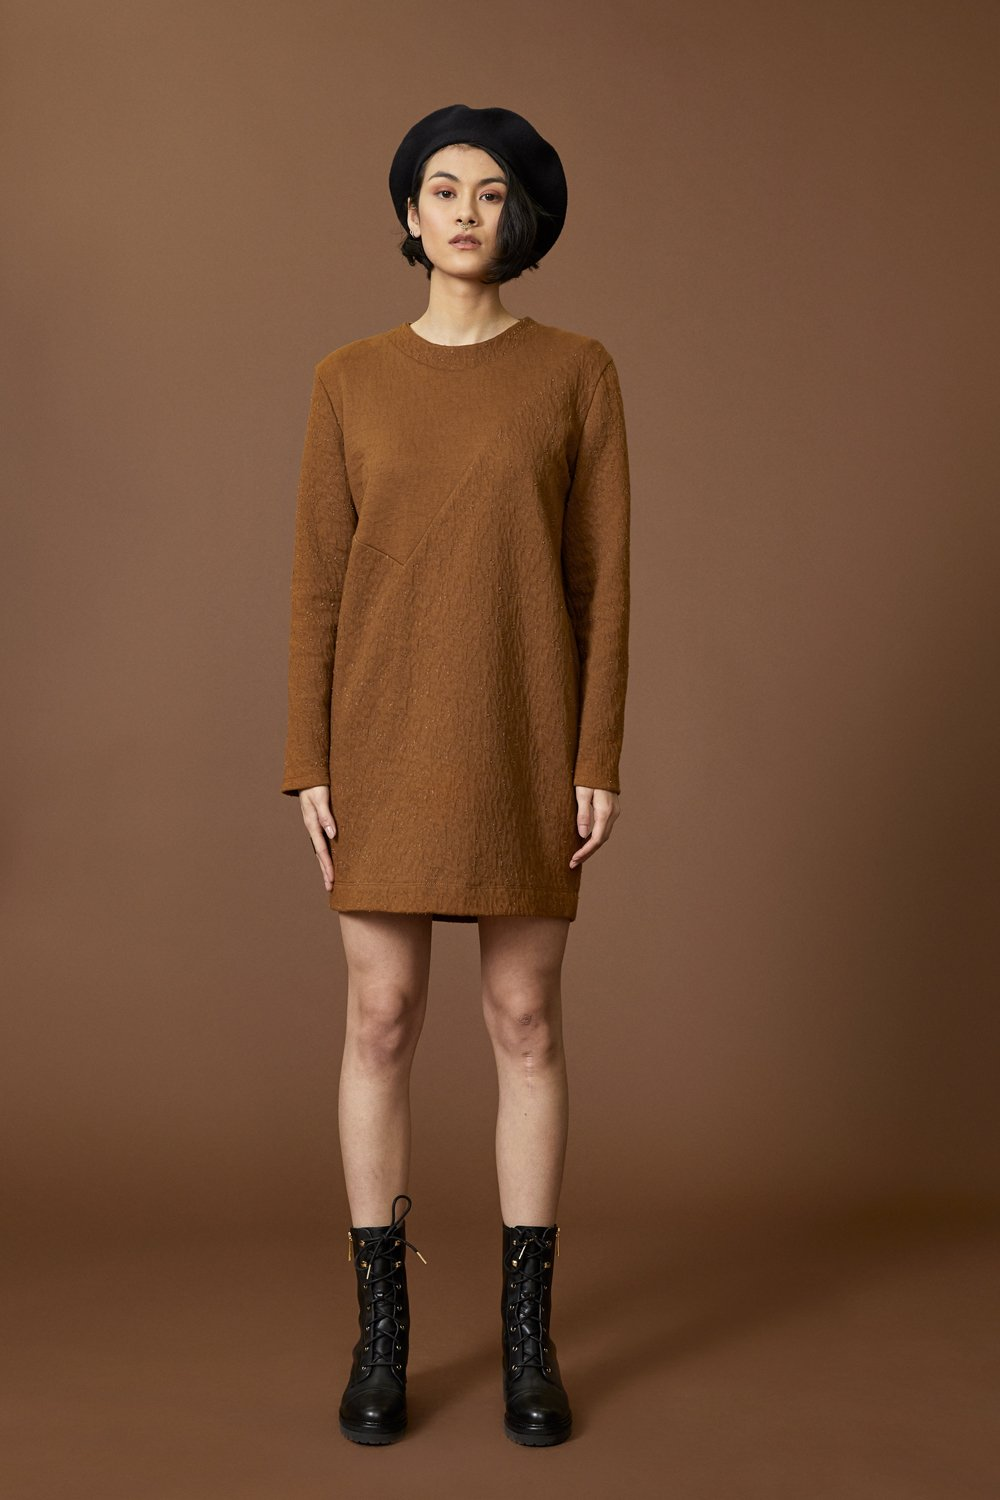 Faye tunic by Cokluch; round neck; long-sleeved; hits above the knee; asymmetrical yoke at the front; cinnamon crinkle material; full length front view, styled with black combat boots